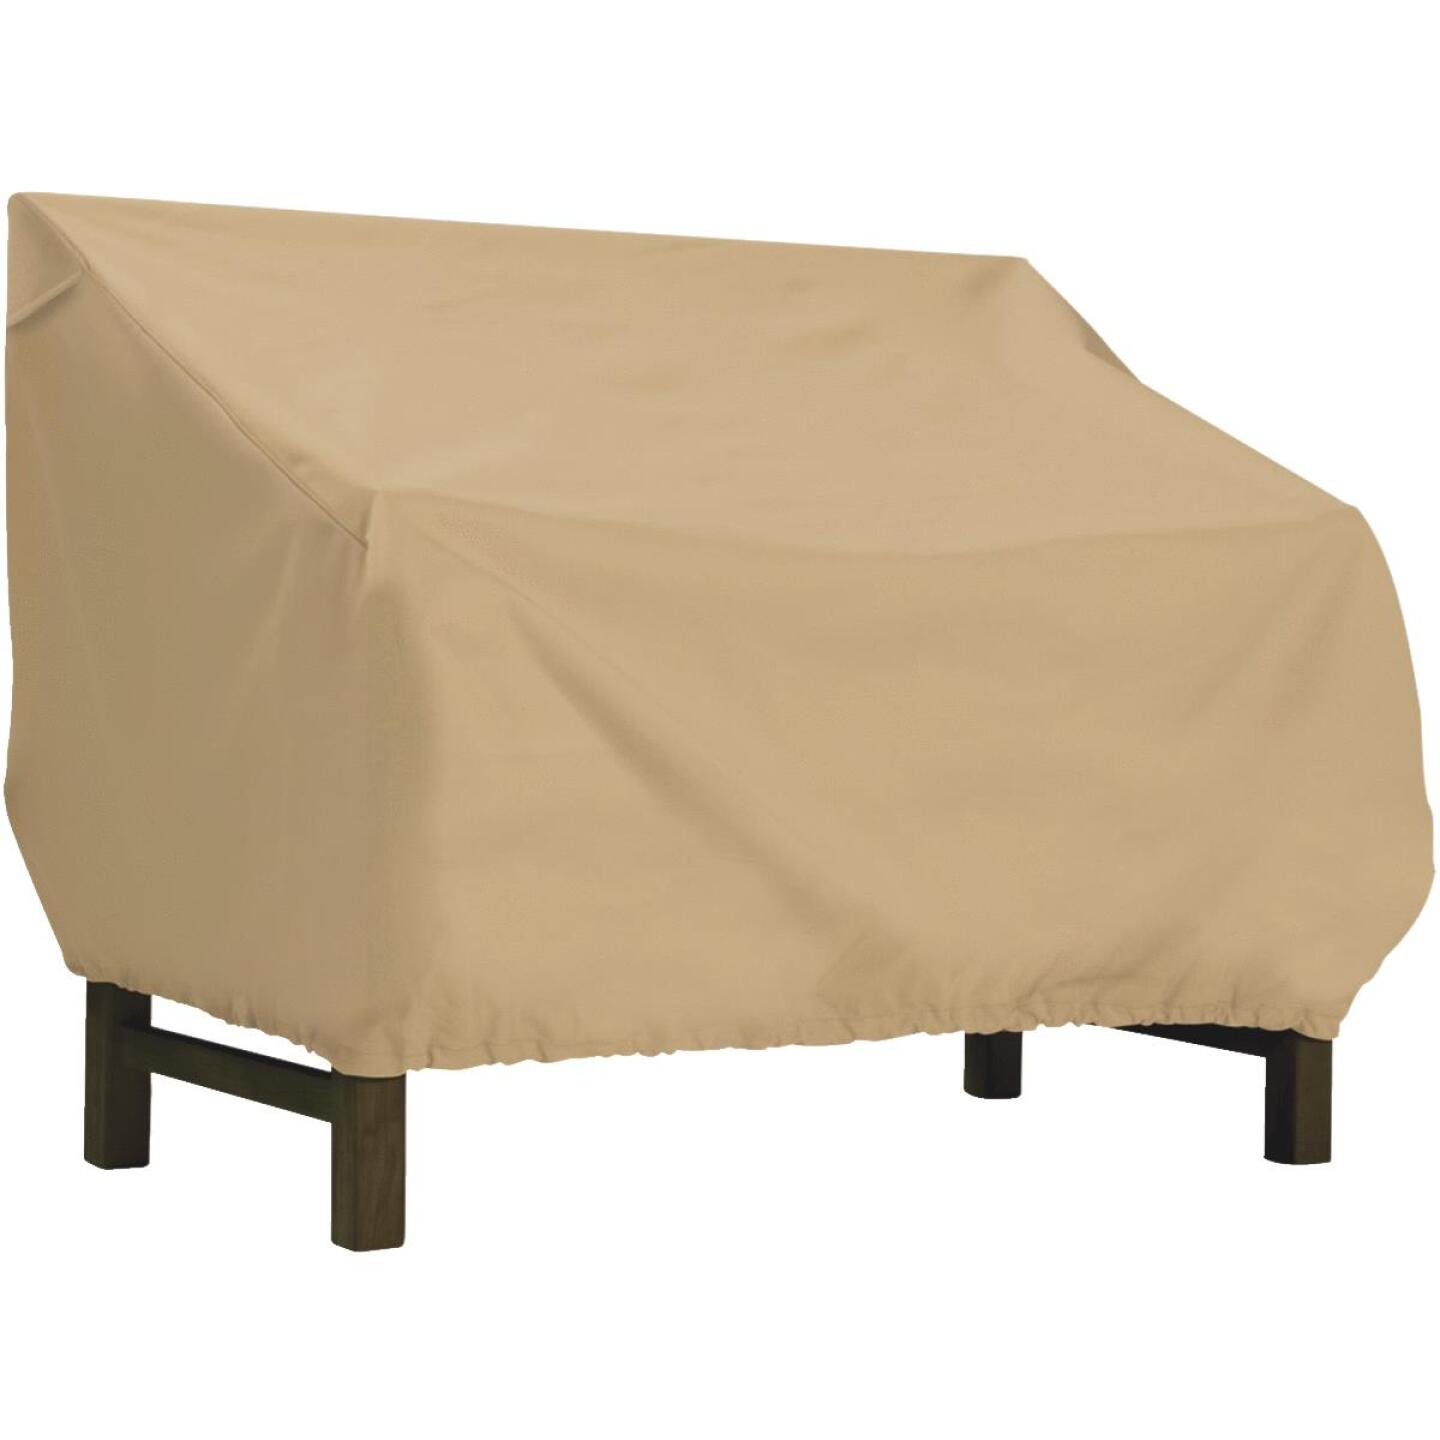 Classic Accessories 32 In. W. x 31 In. H. x 75 In. L. Tan Polyester/PVC Bench/Glider Cover Image 1